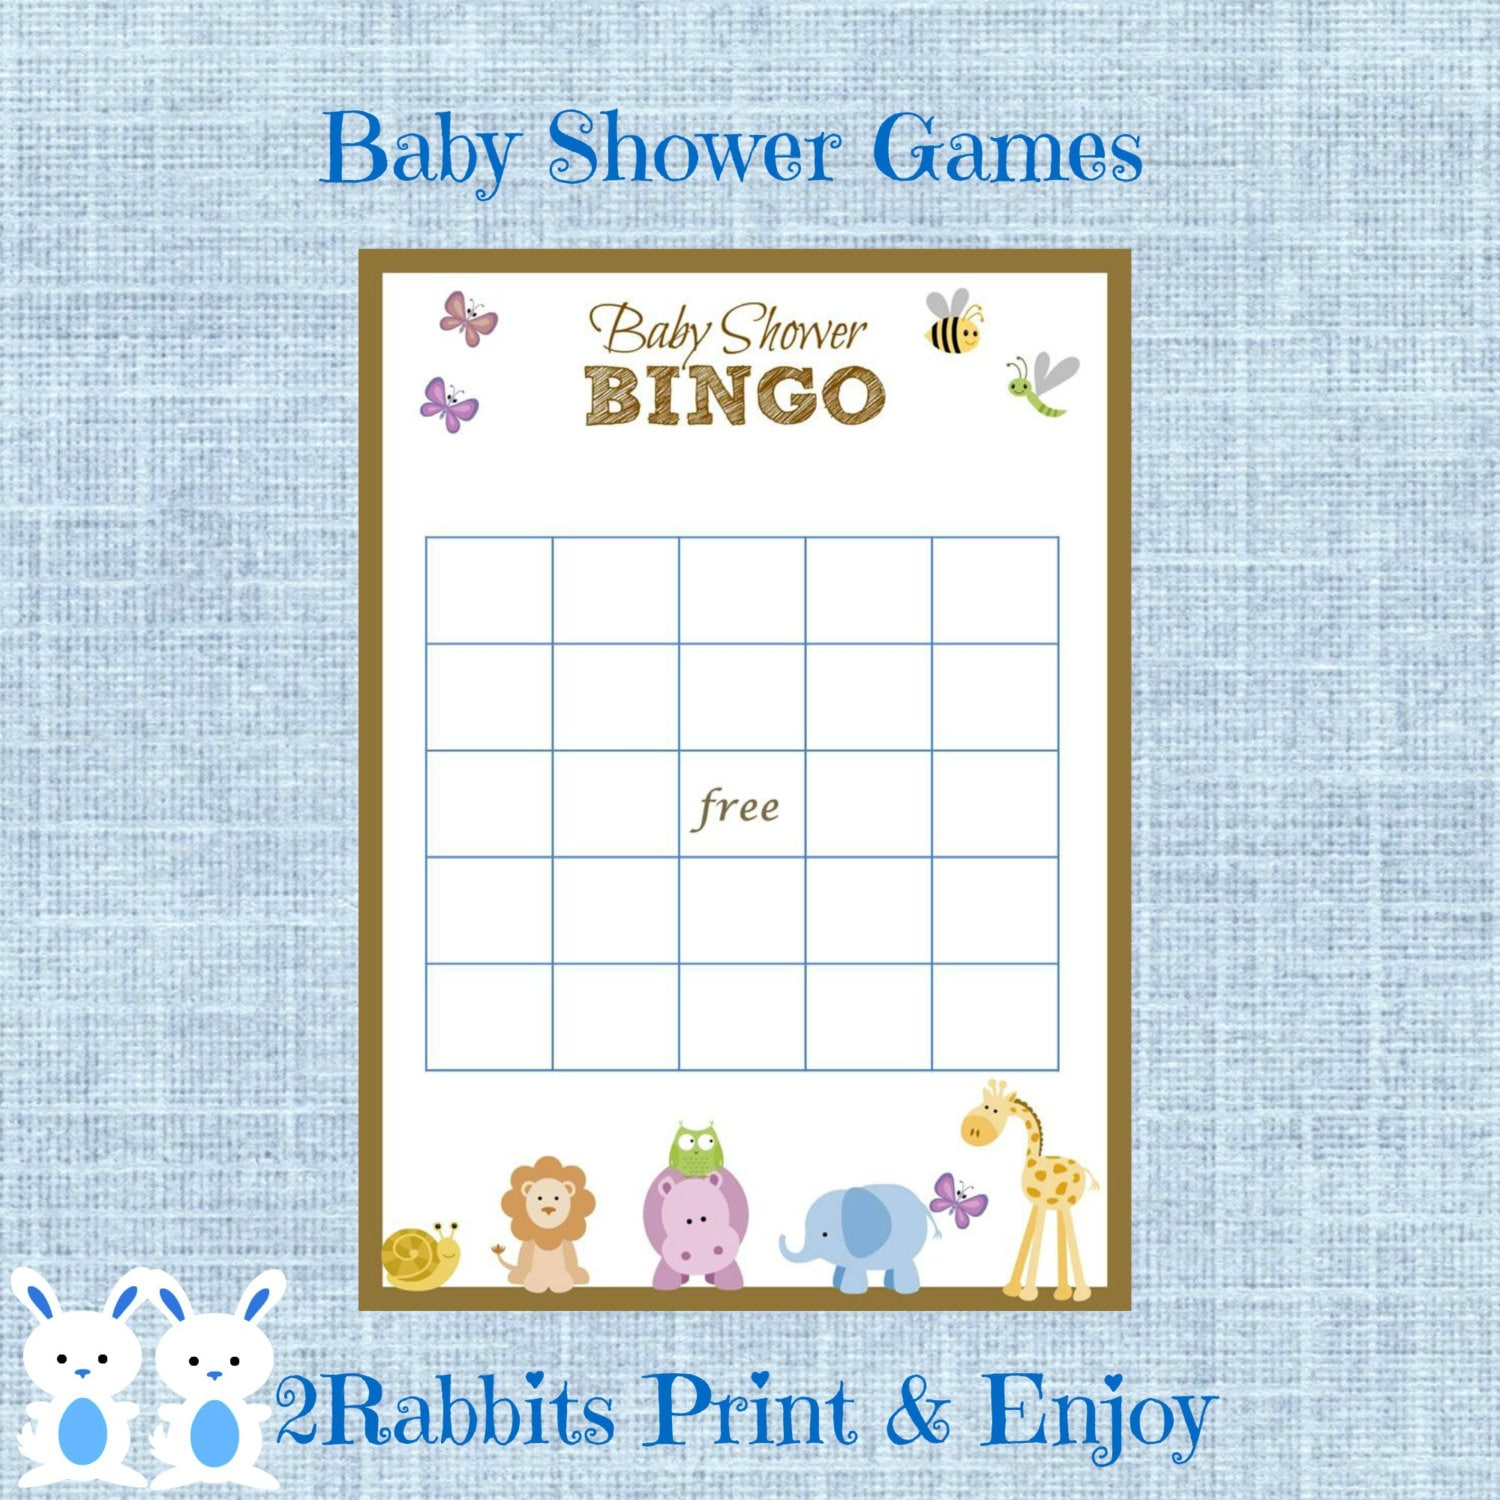 Free Printables Baby Shower Games: Safari Jungle Animal Baby Shower Bingo Gift Cards Game Blank